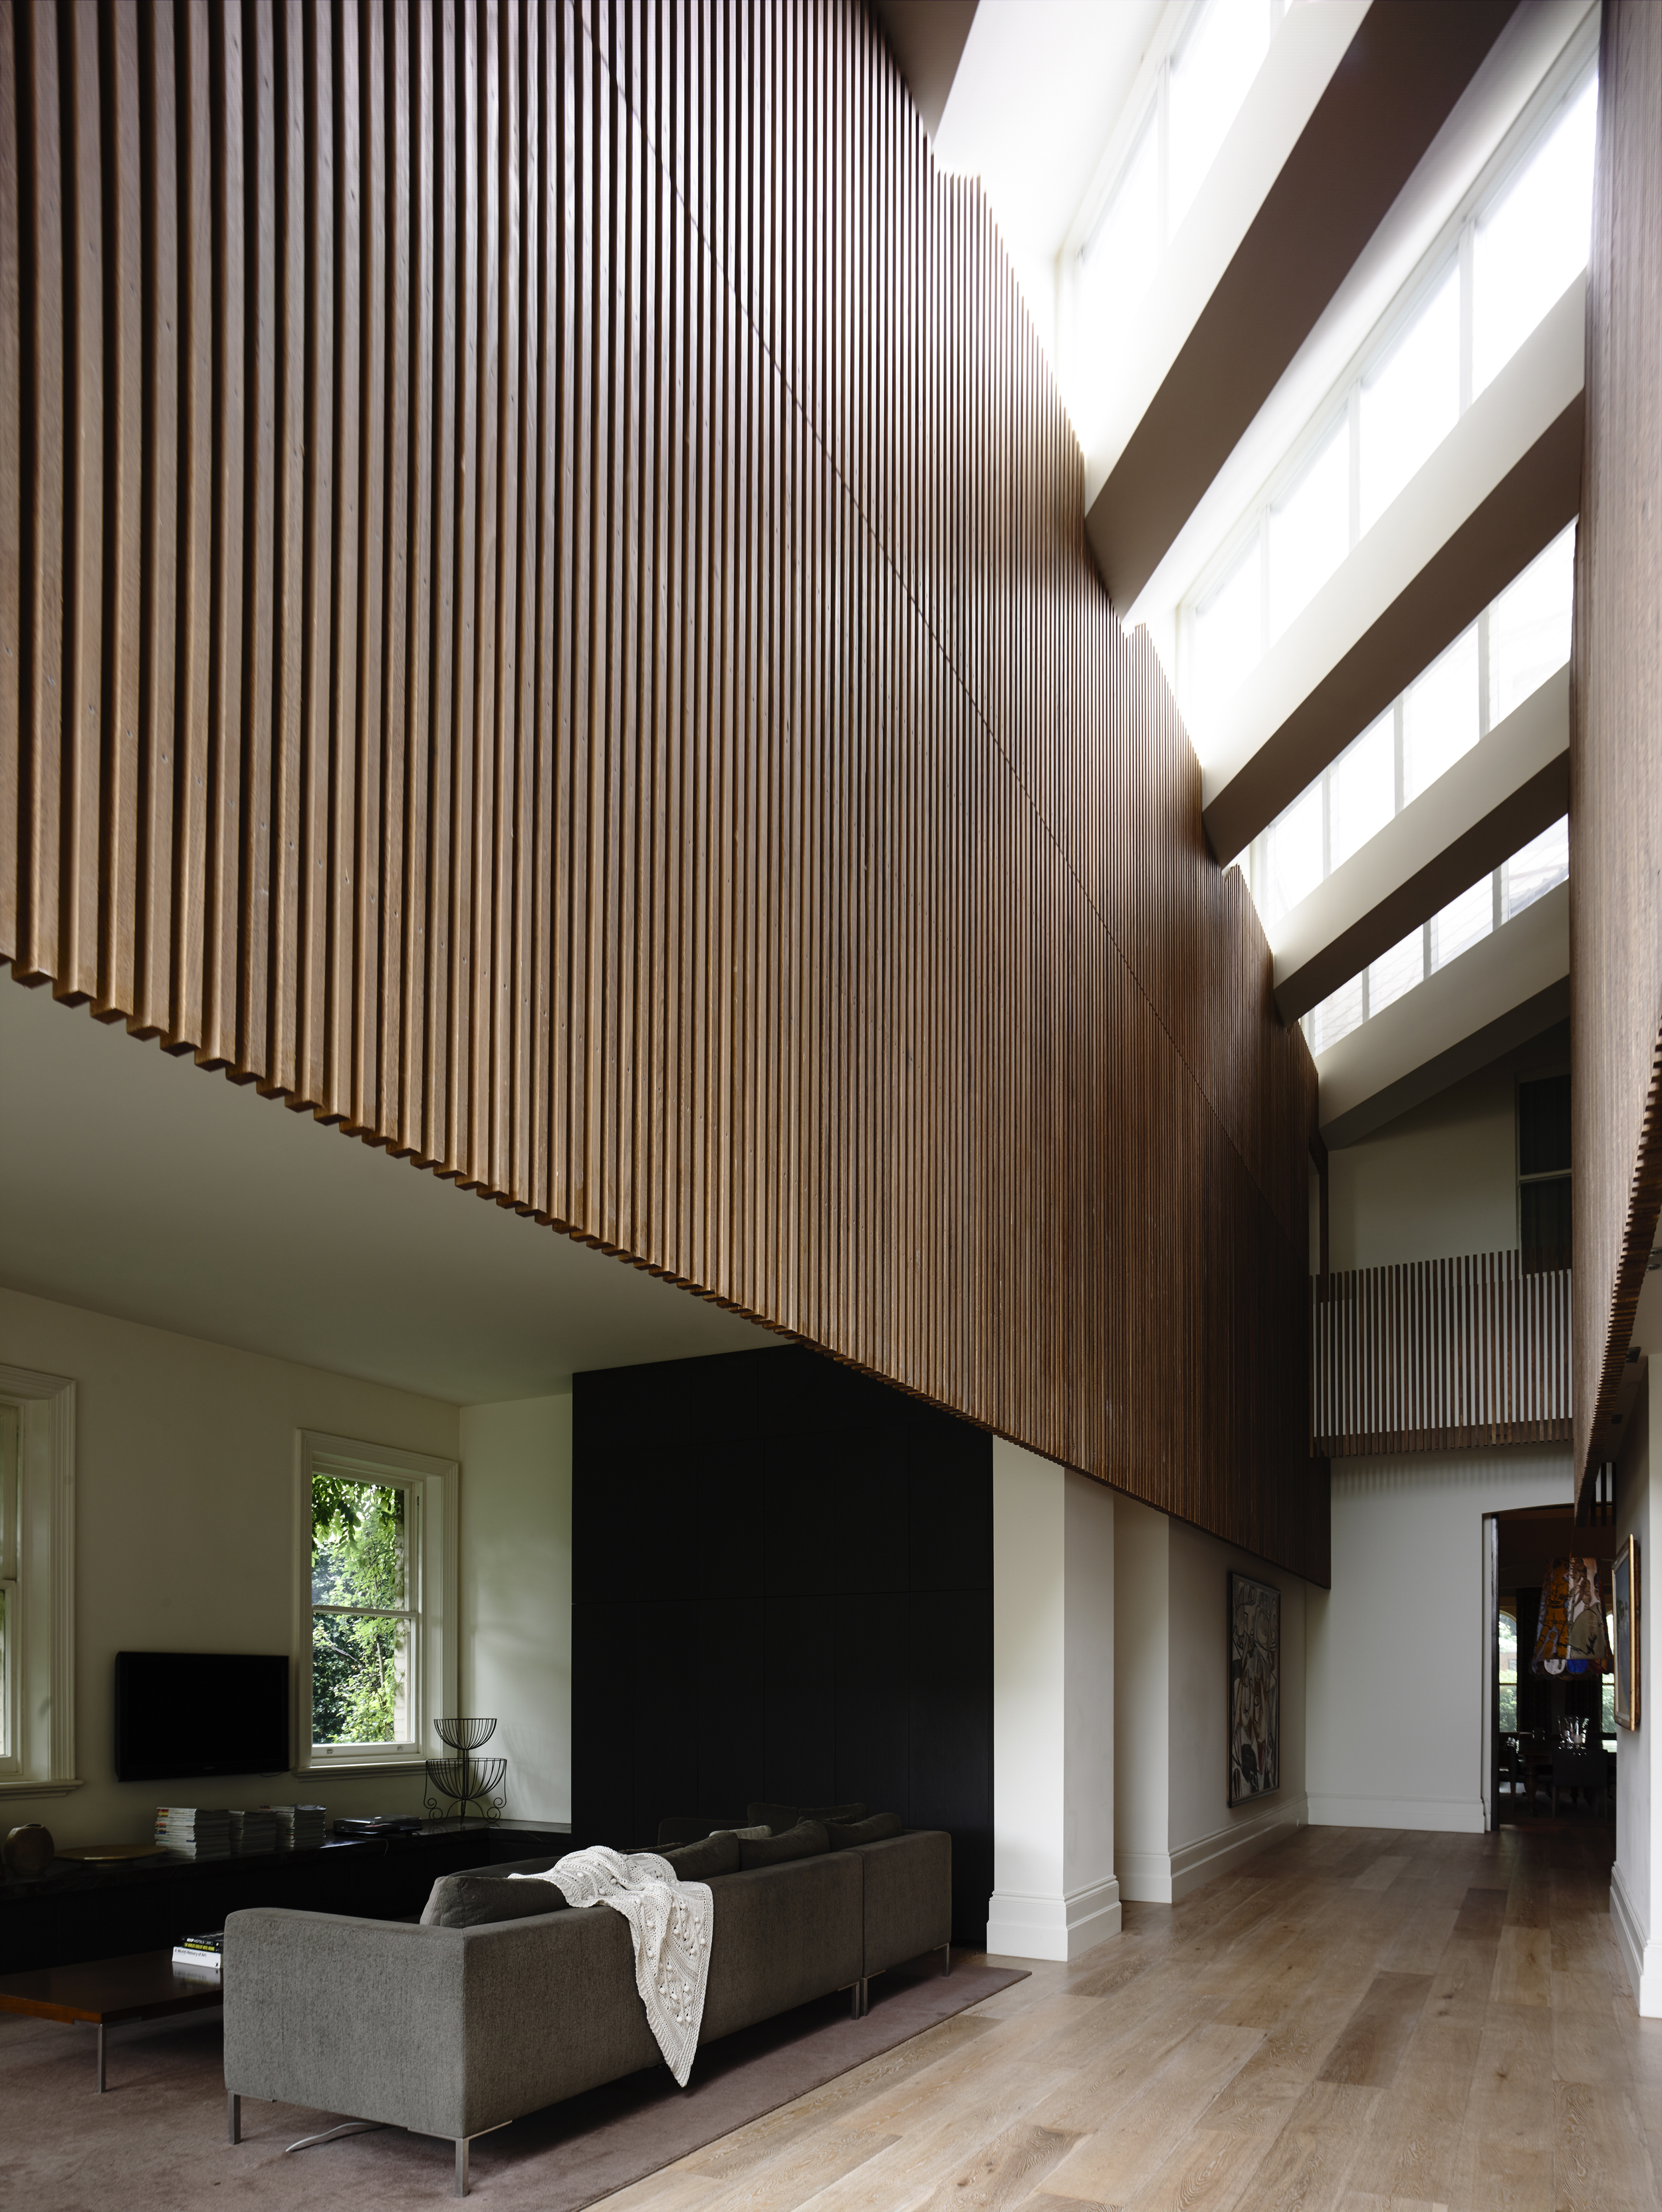 St Kilda house interior by Chamberlain Architects